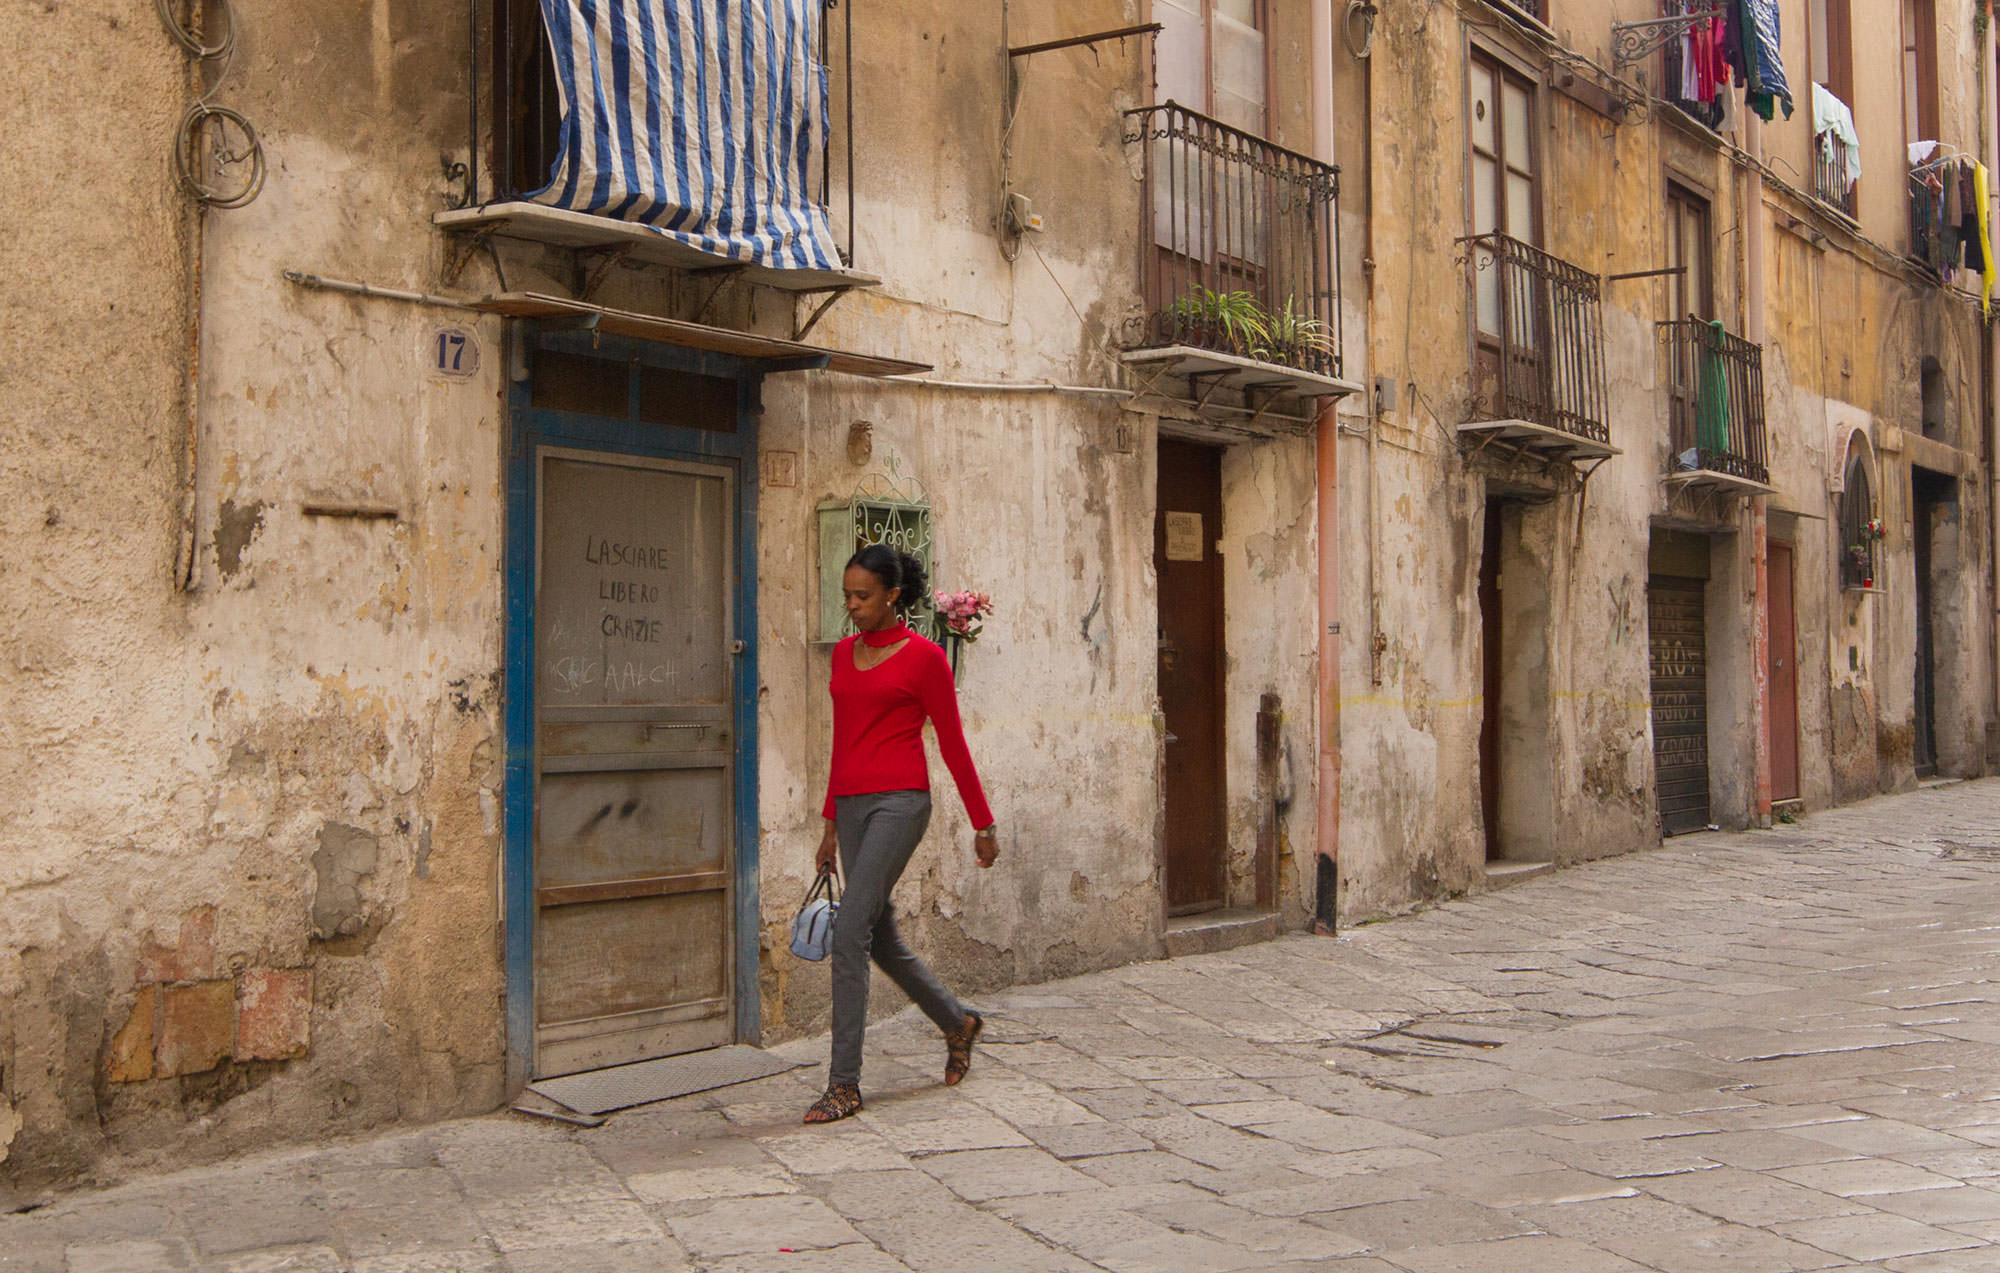 A woman walks in the Kalsa District of Palermo, Sicily.